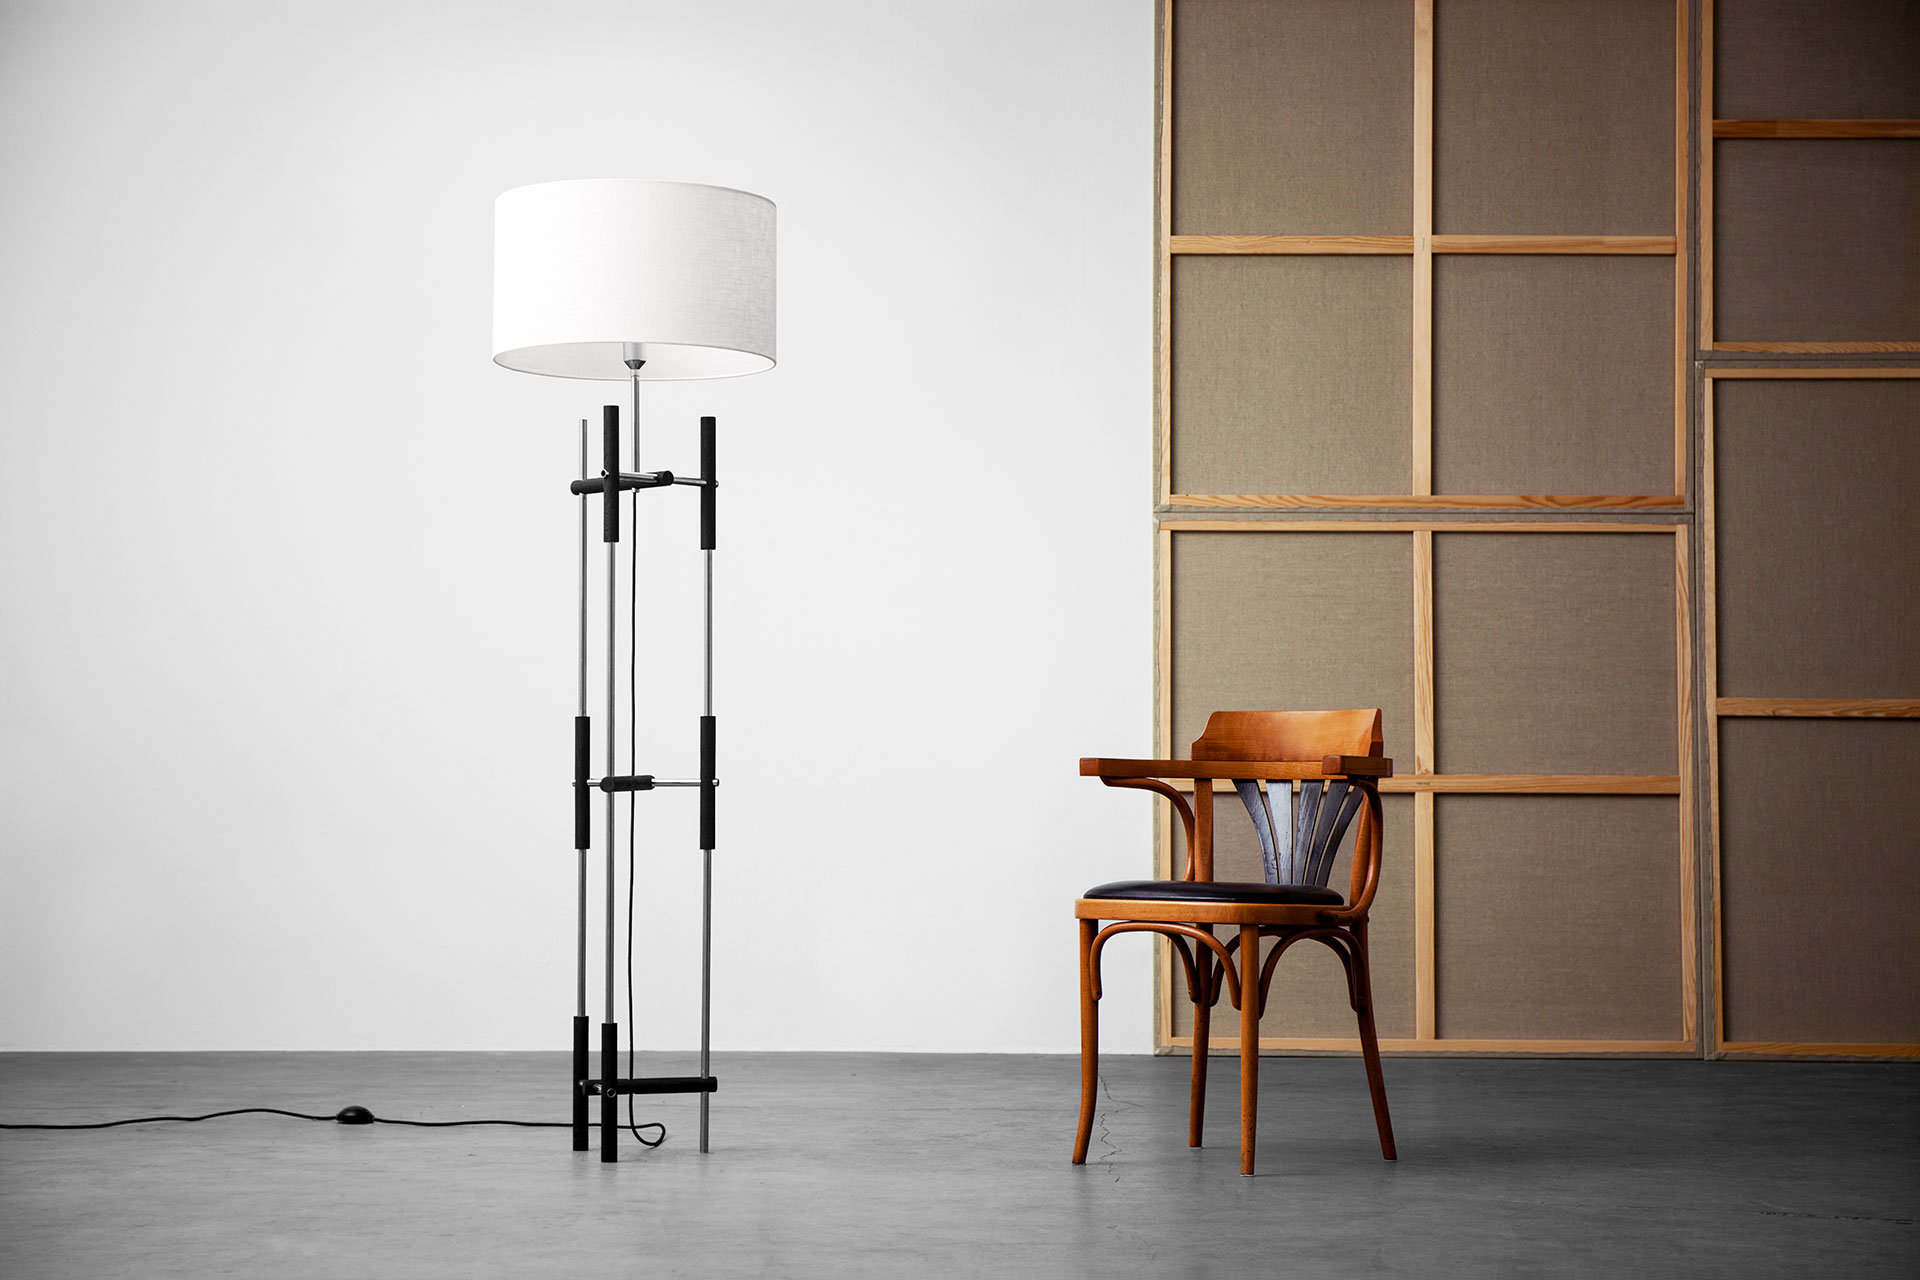 Modern design floor lamp with white shade in loft apartment